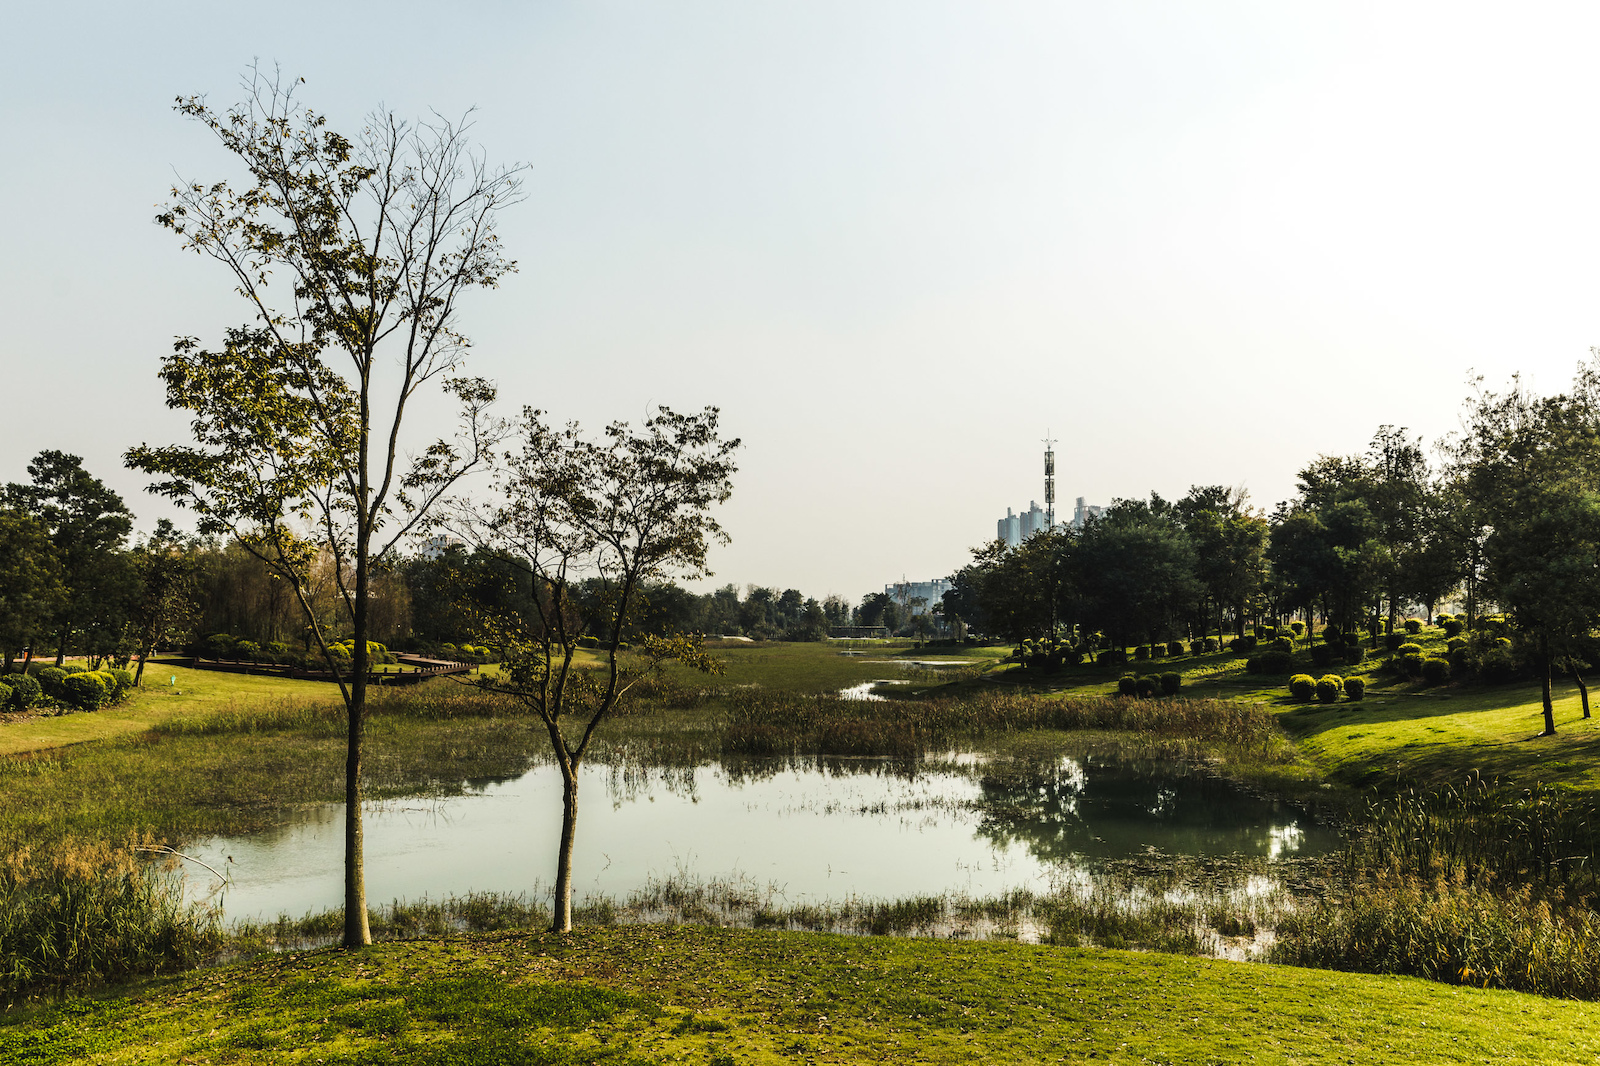 The idyllic Qingshuihe Park plays host to this years event.